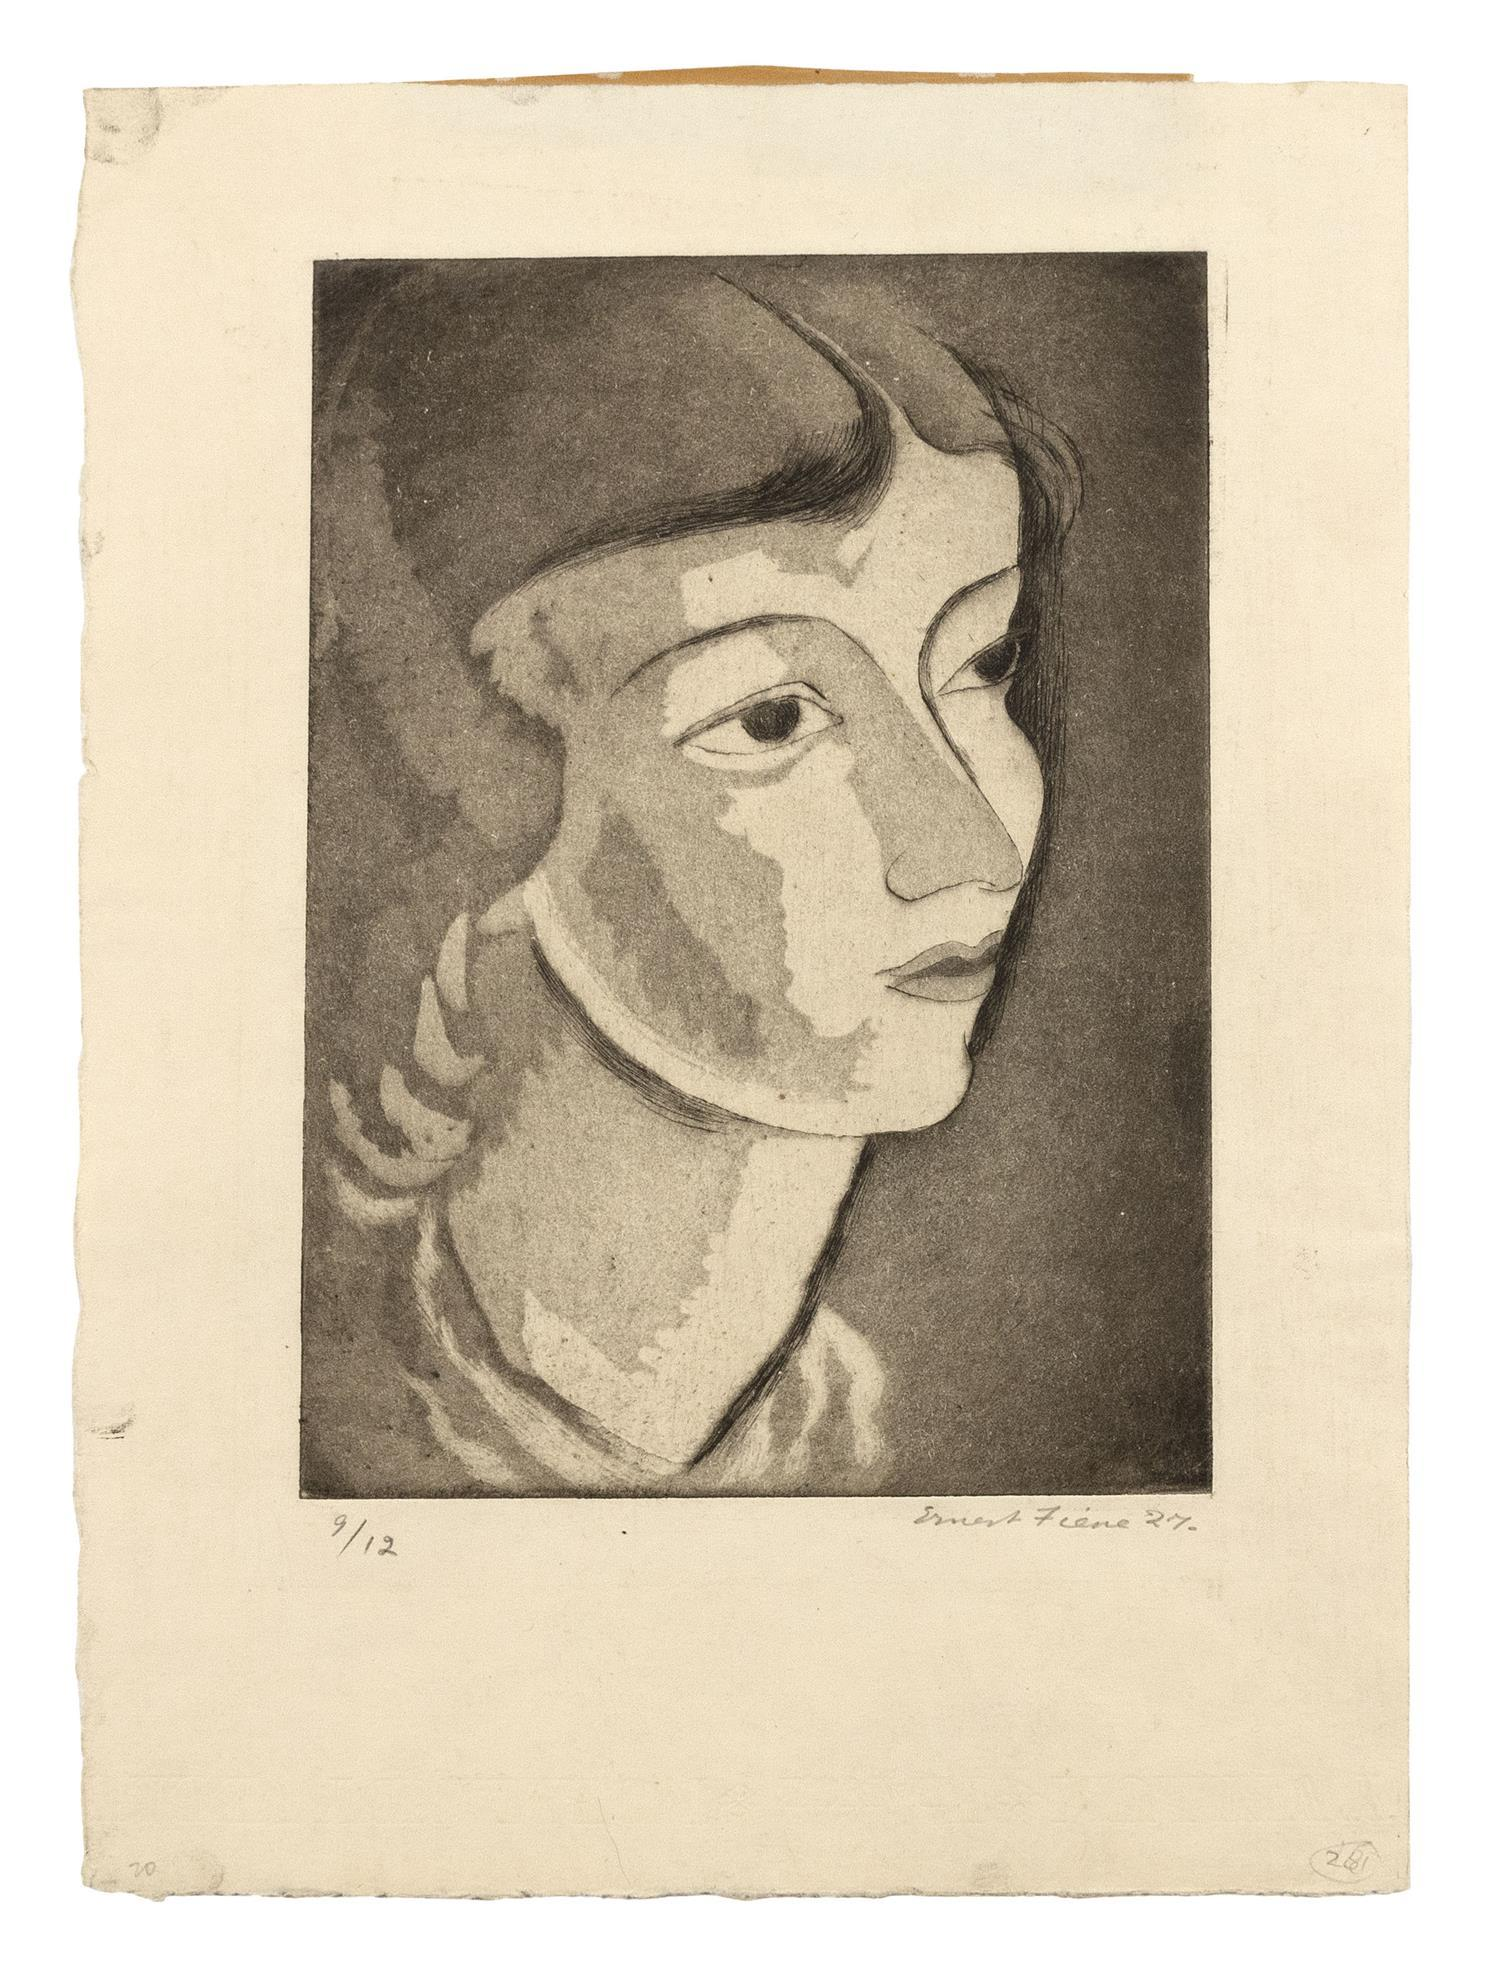 """ERNEST FIENE, New York/Germany, 1894-1965, Portrait of a woman looking right., Aquatint and etching, 8.75"""" x 6.5"""". Paper size 12.75""""..."""